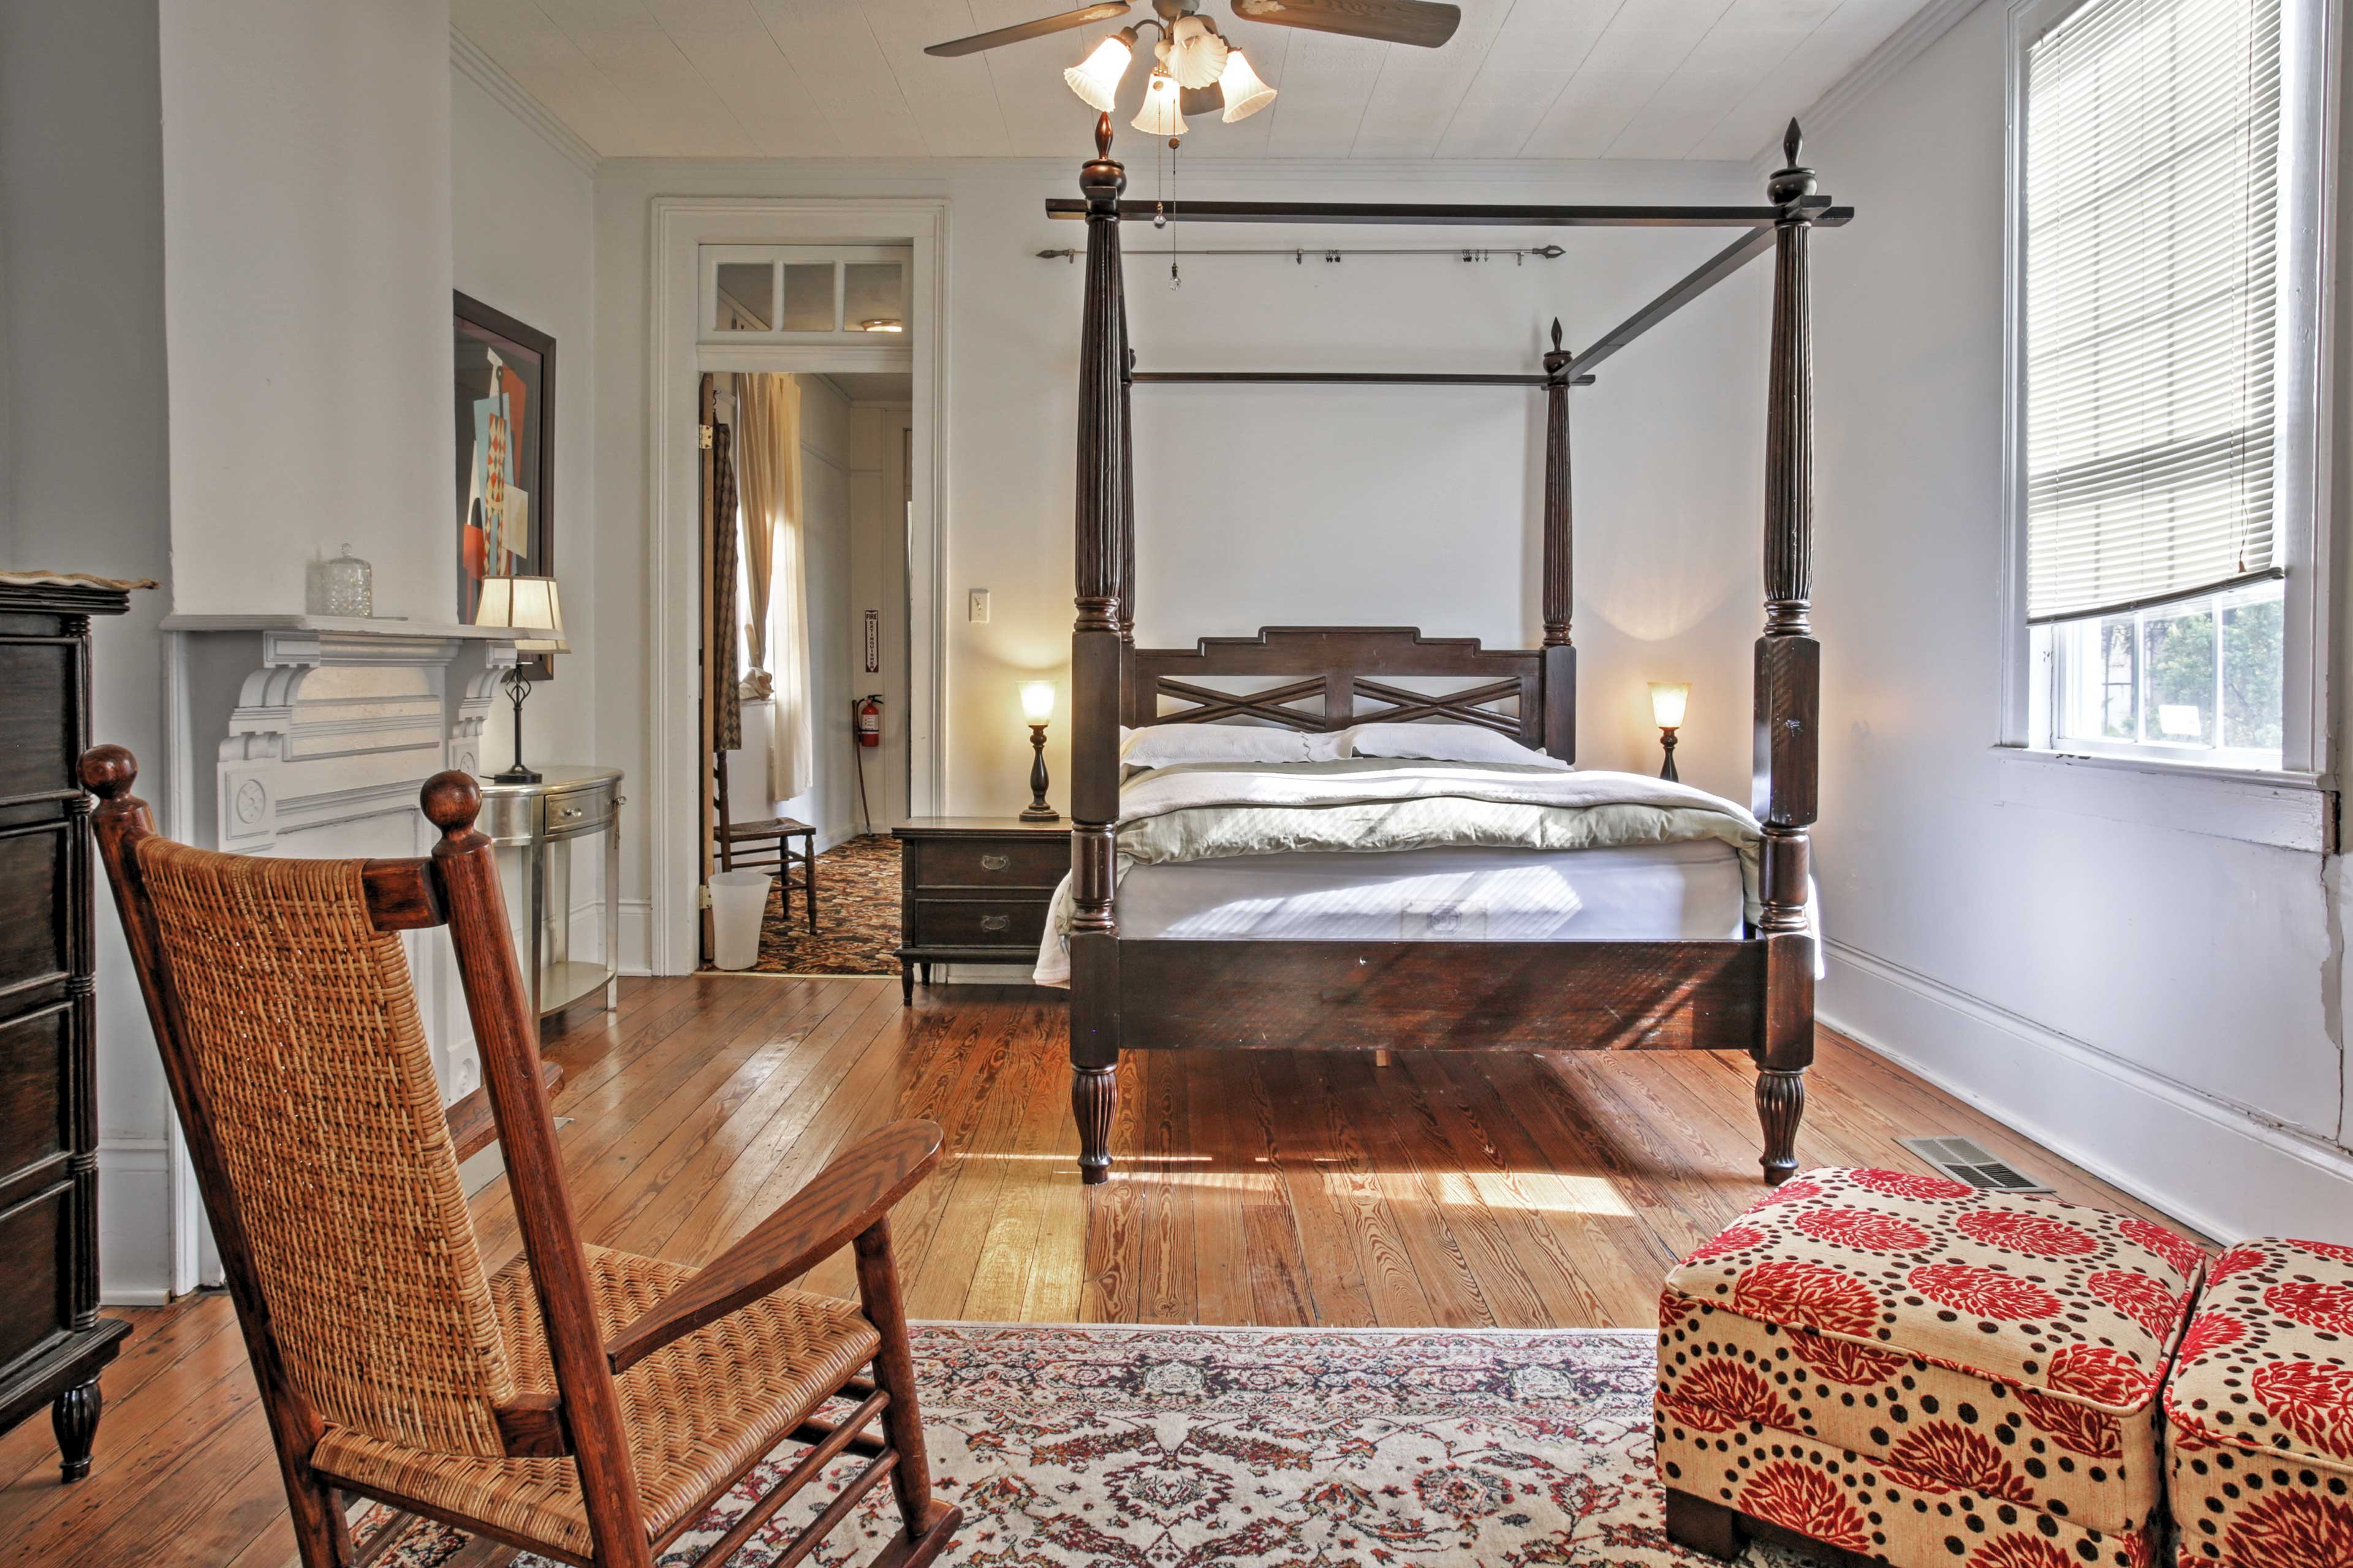 Rest easy in the master bedroom in the plush queen bed.